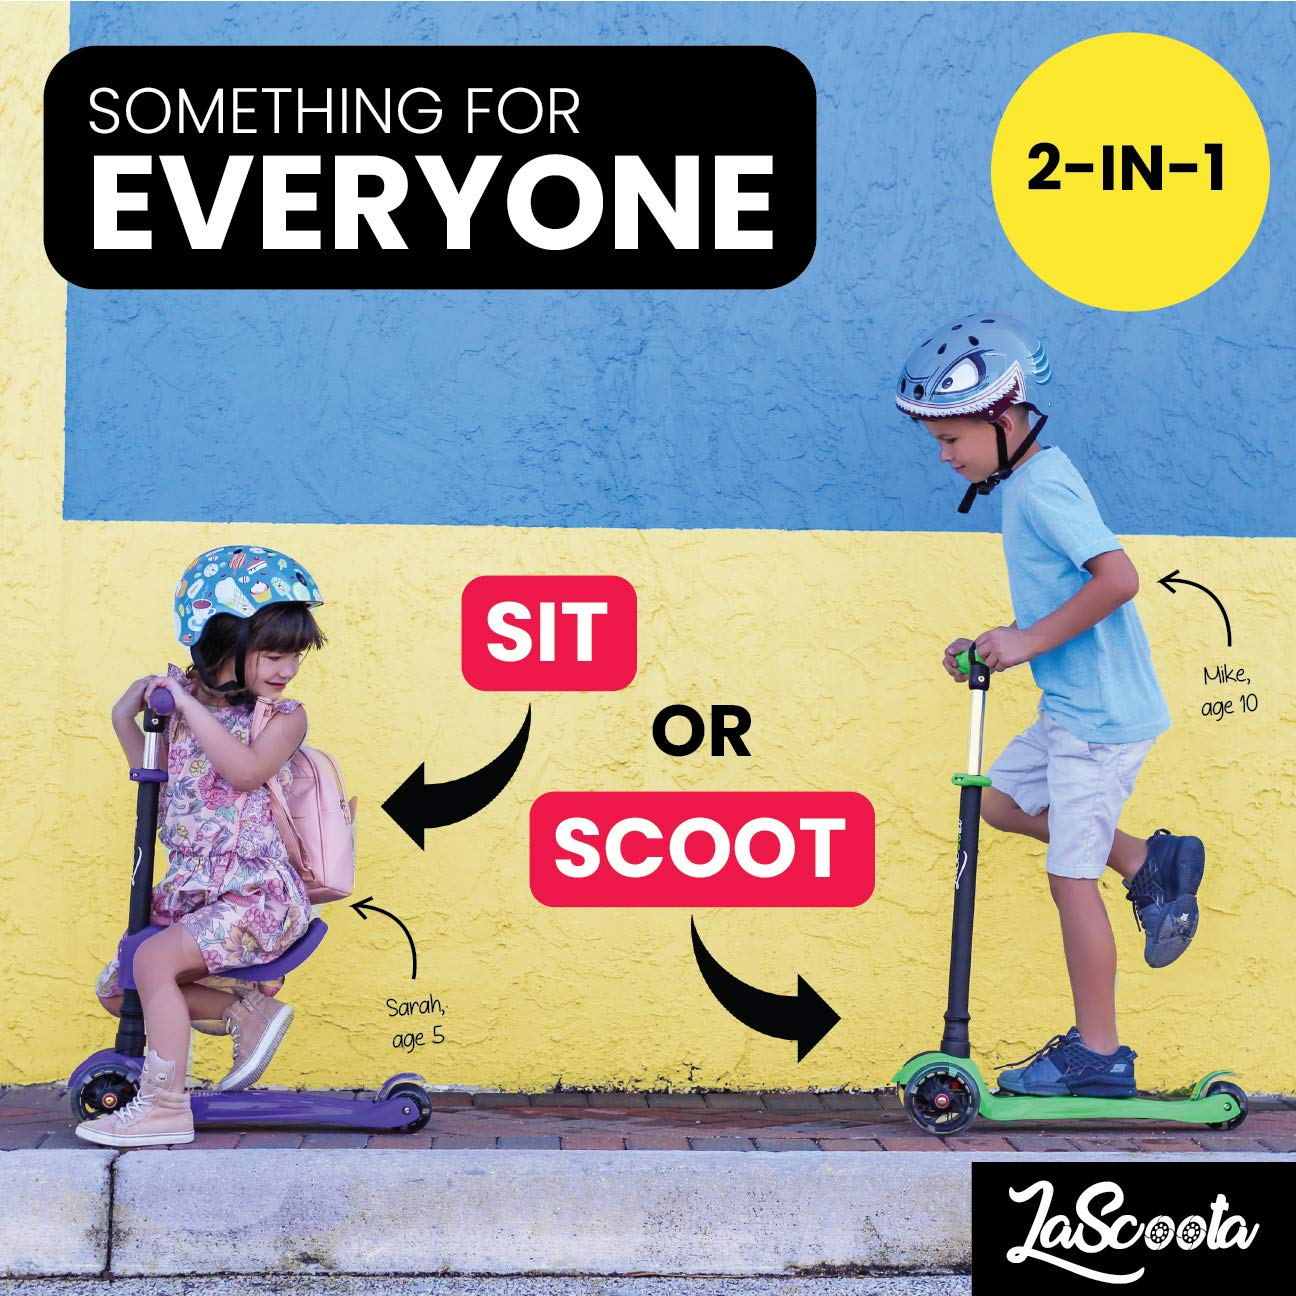 ac3e6dd7f86 Amazon.com   Scooter for Kids Scooters 3 Wheeled Scooter 3 Wheel Scooter  for Kids Ages 2-12 (Blue)   Sports   Outdoors